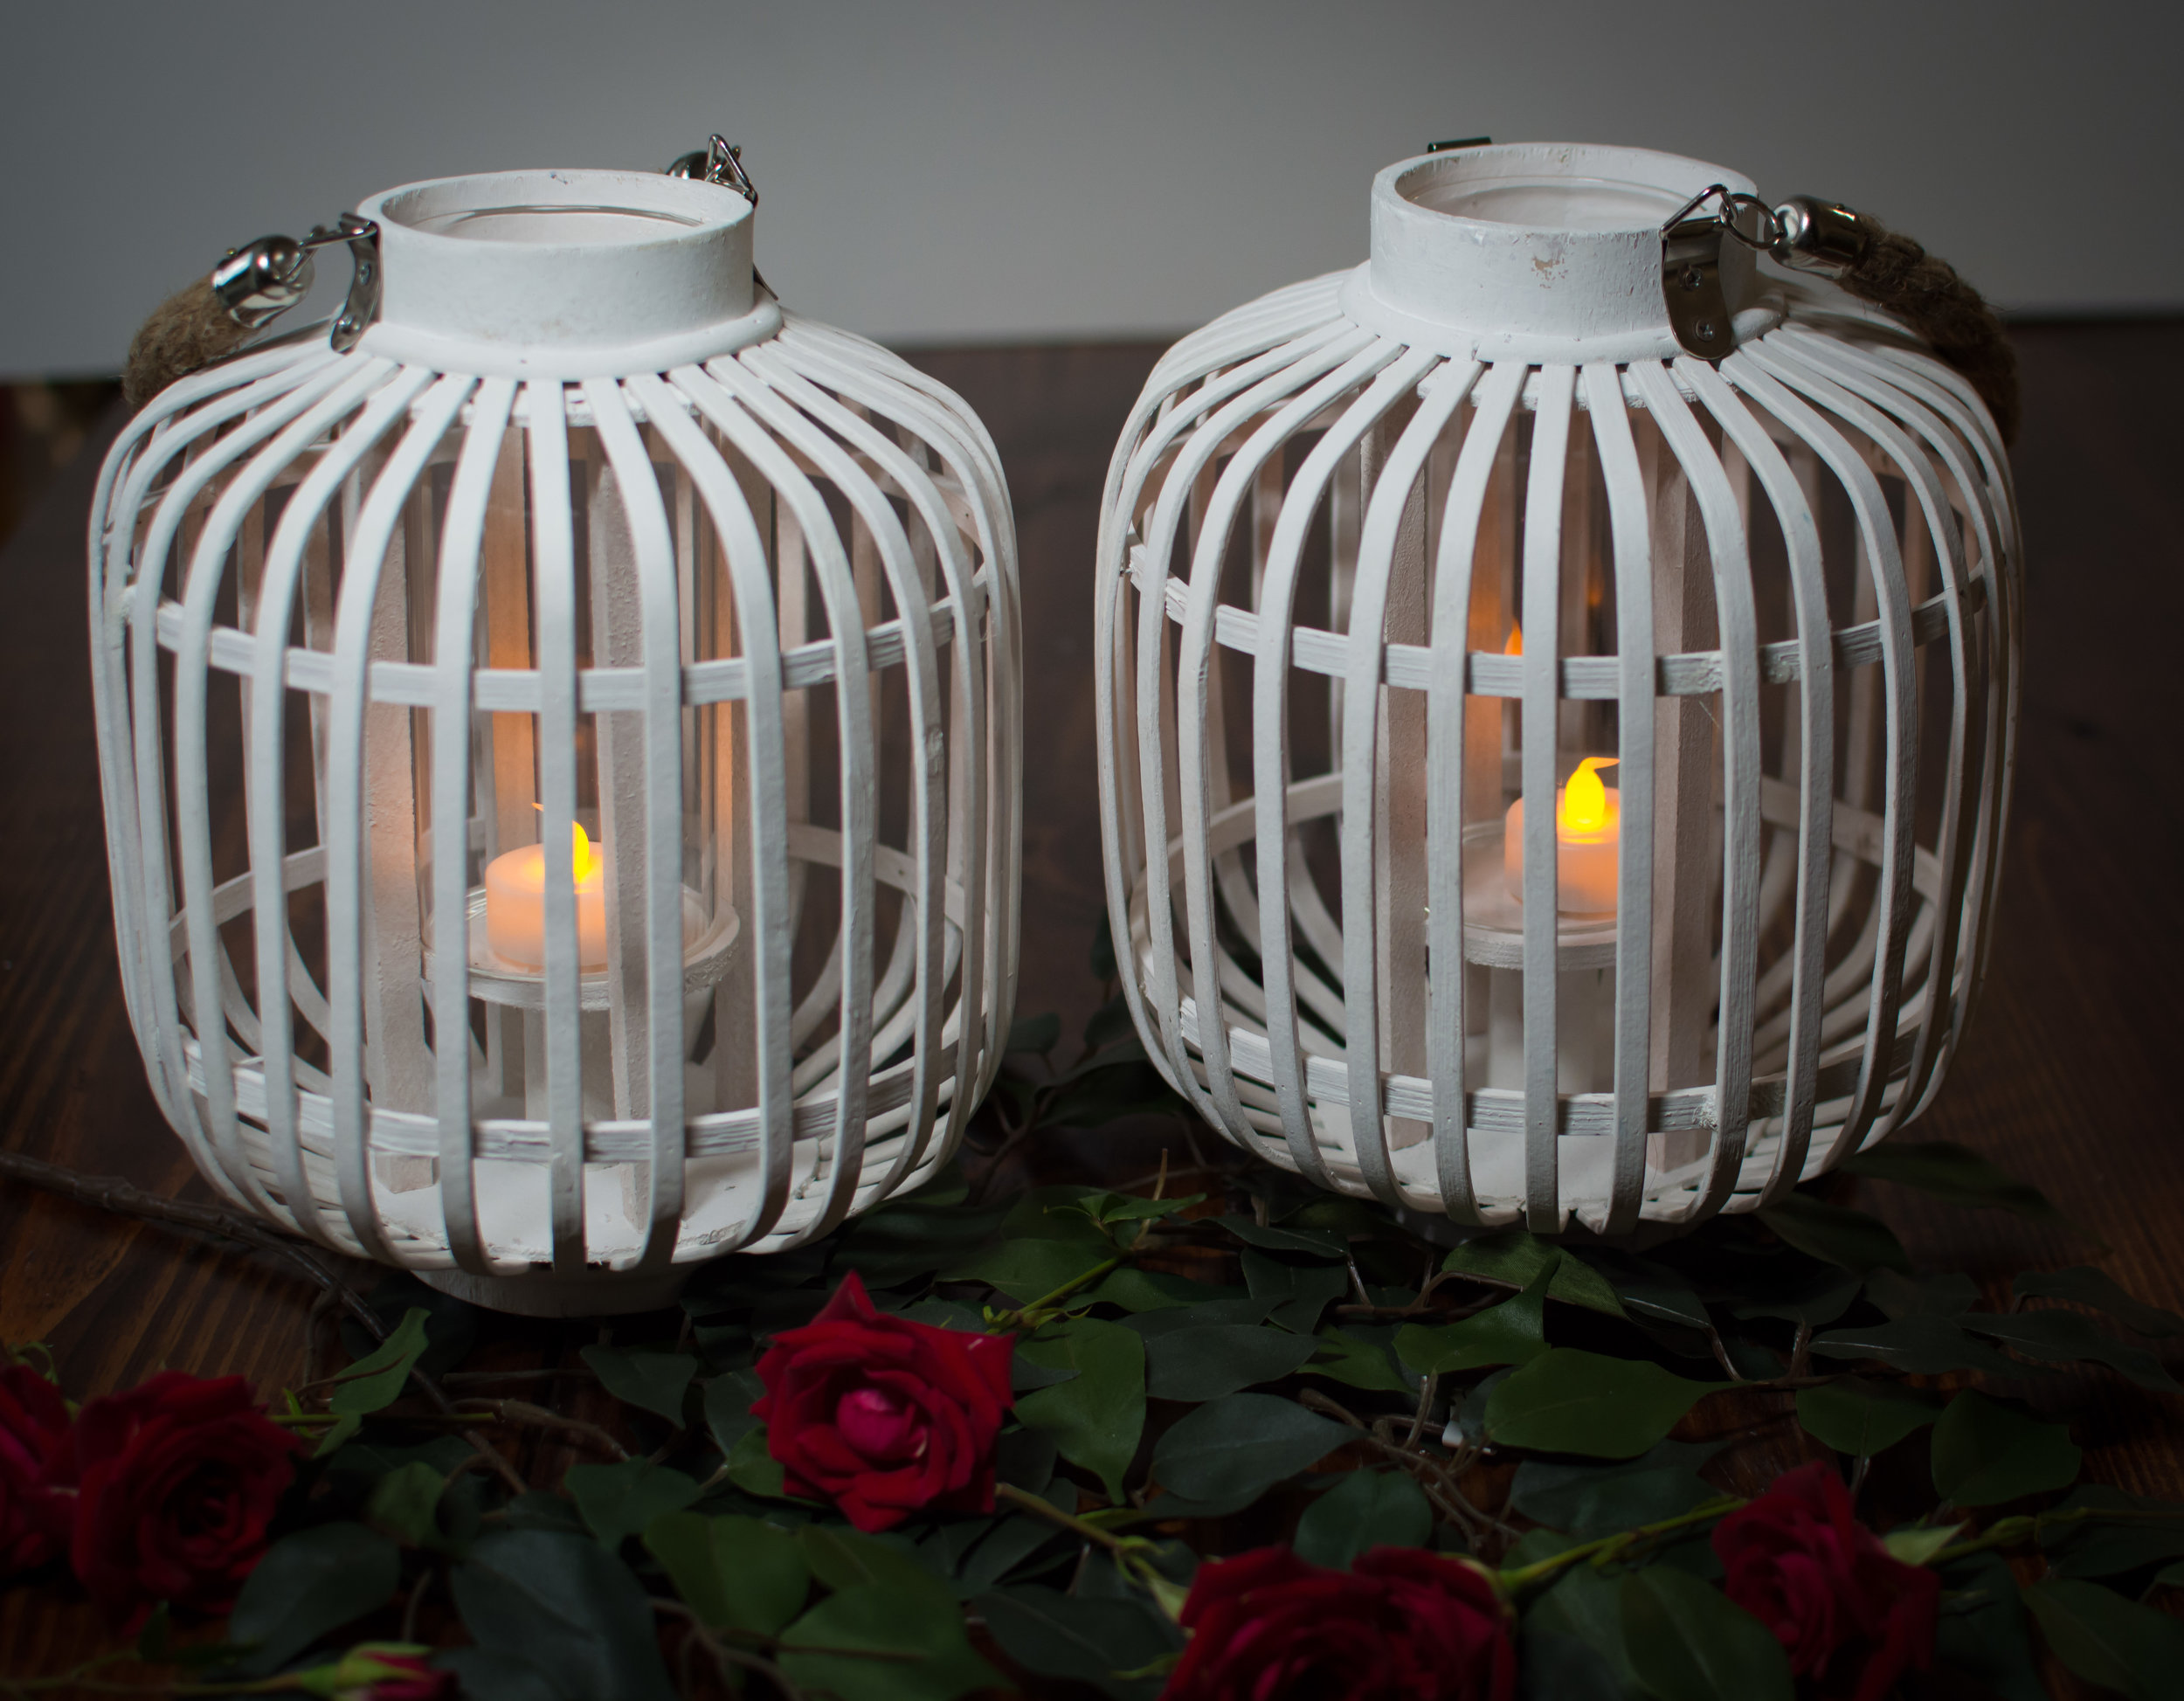 Set of 2 round white lanterns with candleholder   Price: $14.00/ $7 Each  Inquire about quantity and availability